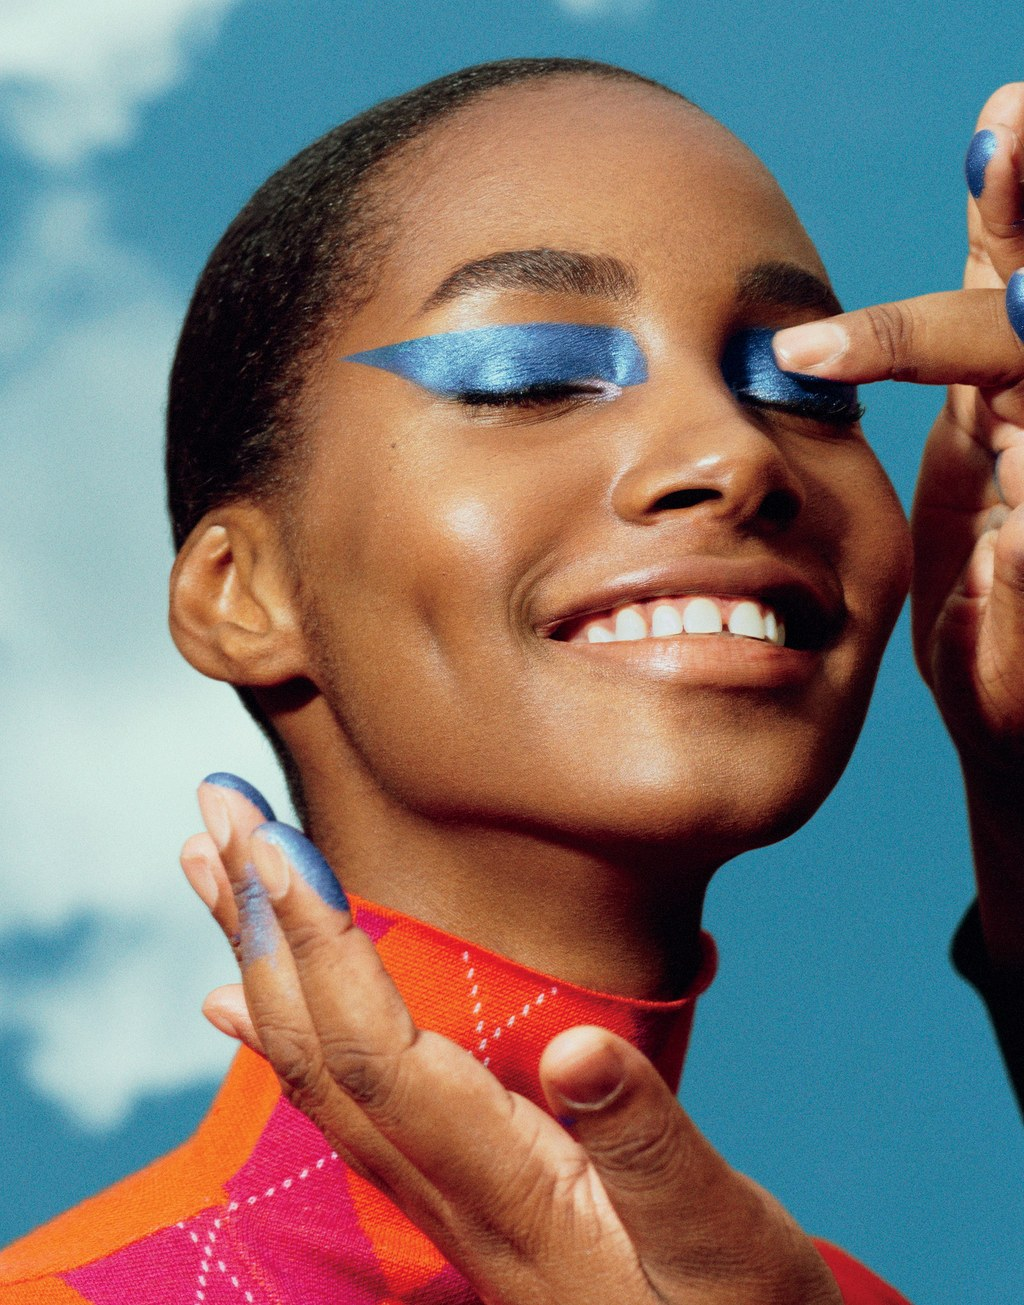 pat-mcgrath-first-collection-color-cosmetics-vogue-september-2017